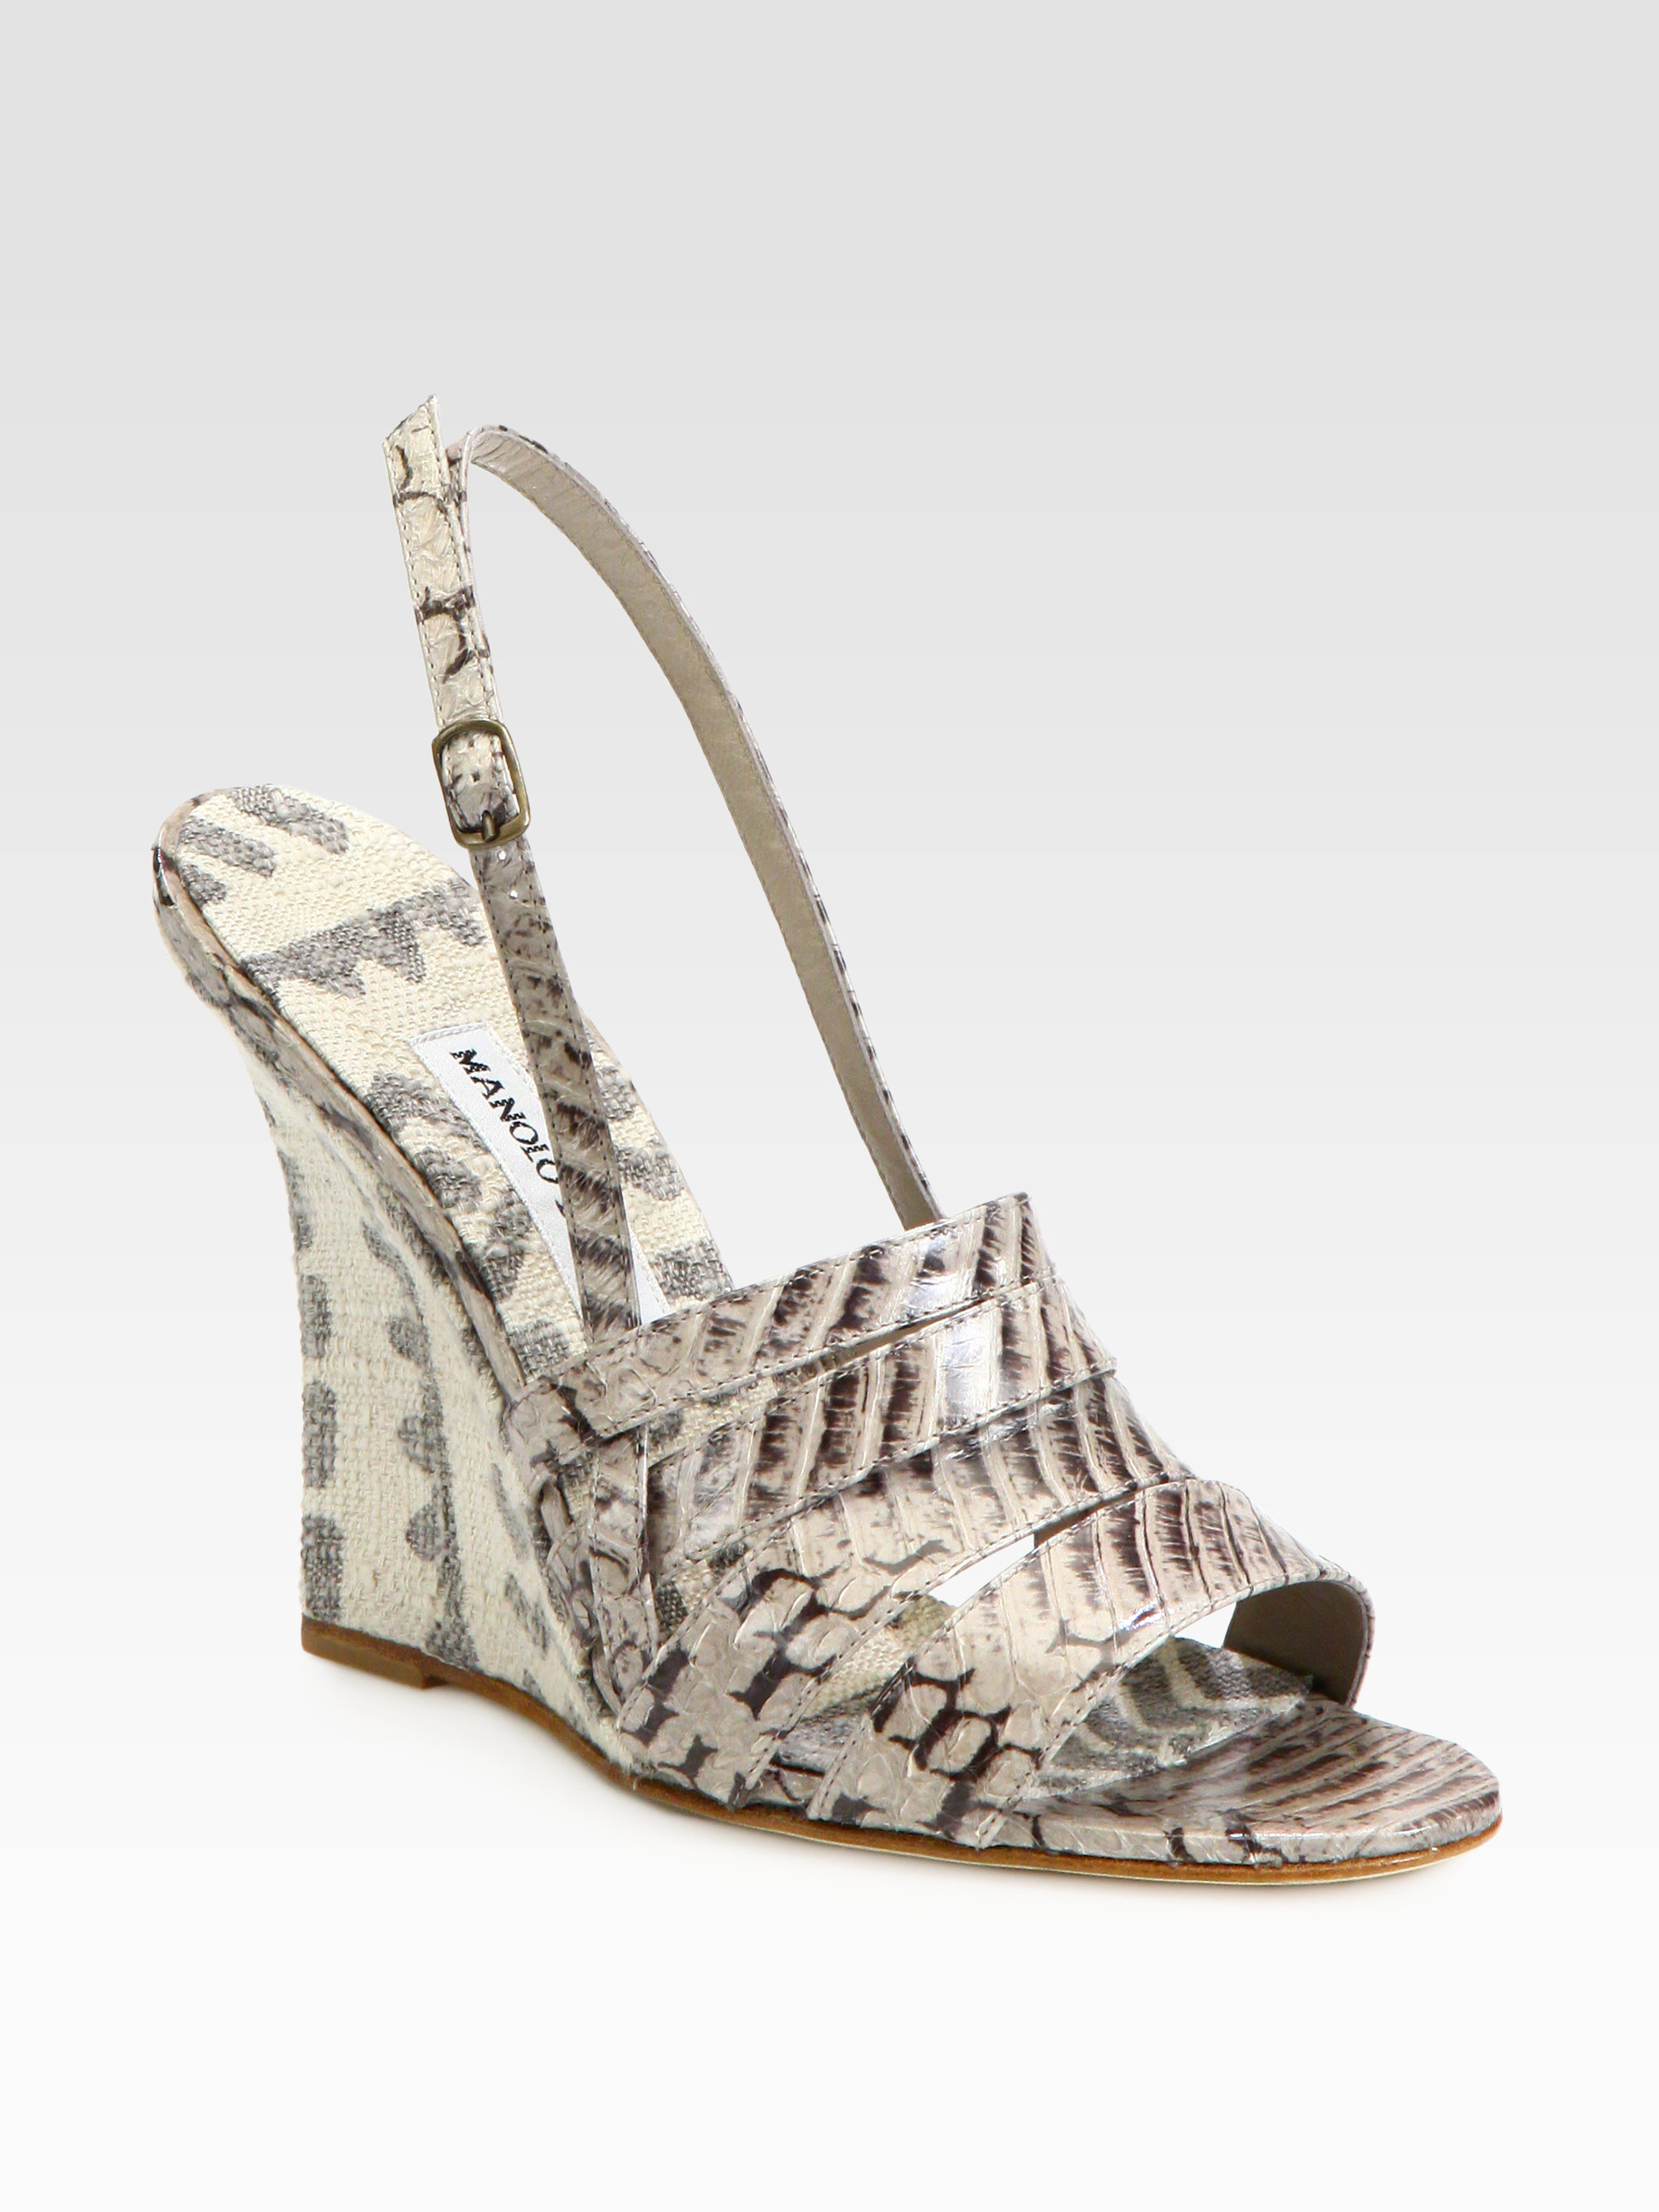 discount extremely for sale 2014 Manolo Blahnik Slingback Wedge Sandals 3gIAYX3gCD